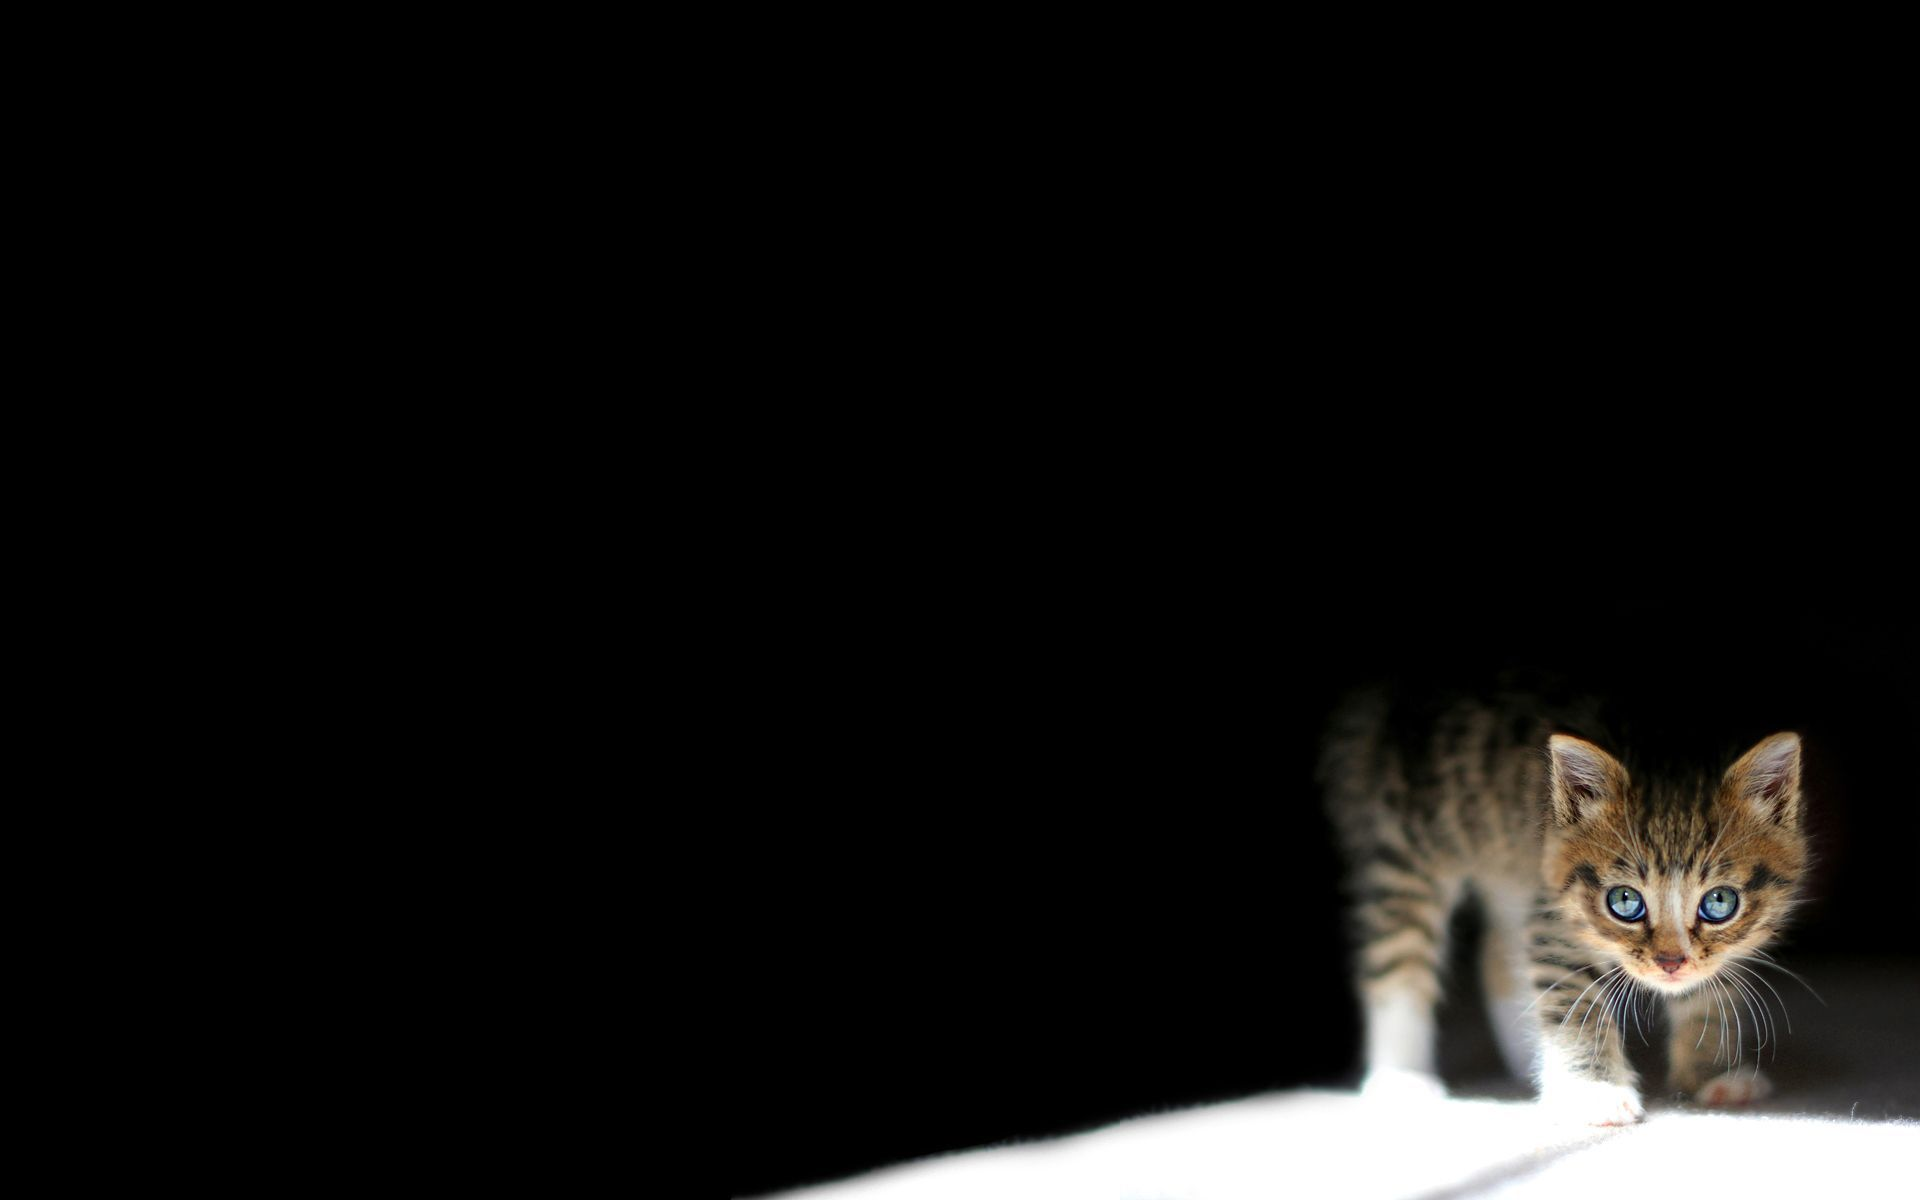 Cat Backgrounds Pictures - Wallpaper Cave